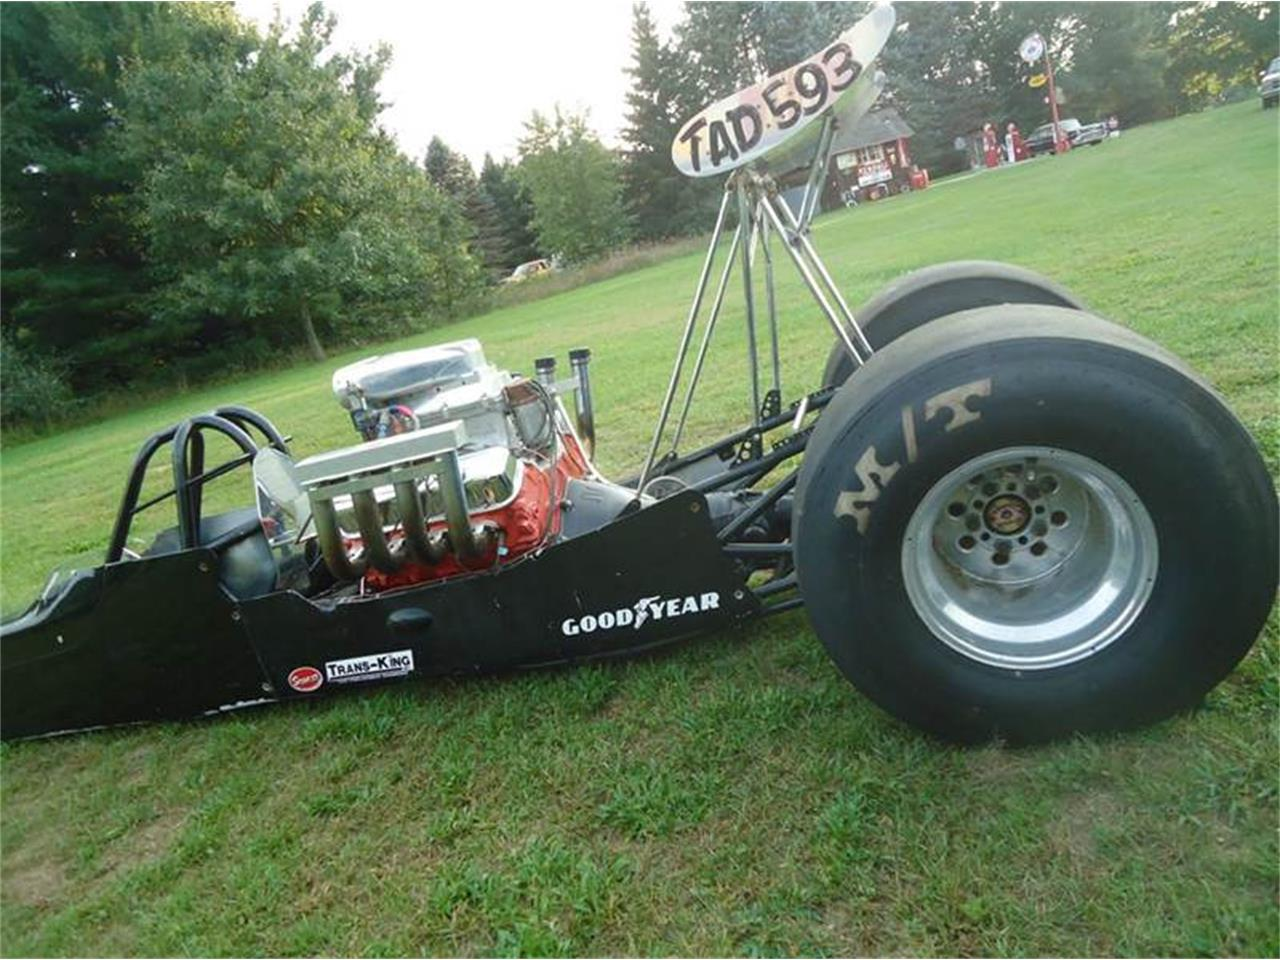 1975 dragster 1970 s for sale in Jackson, MI – photo 5